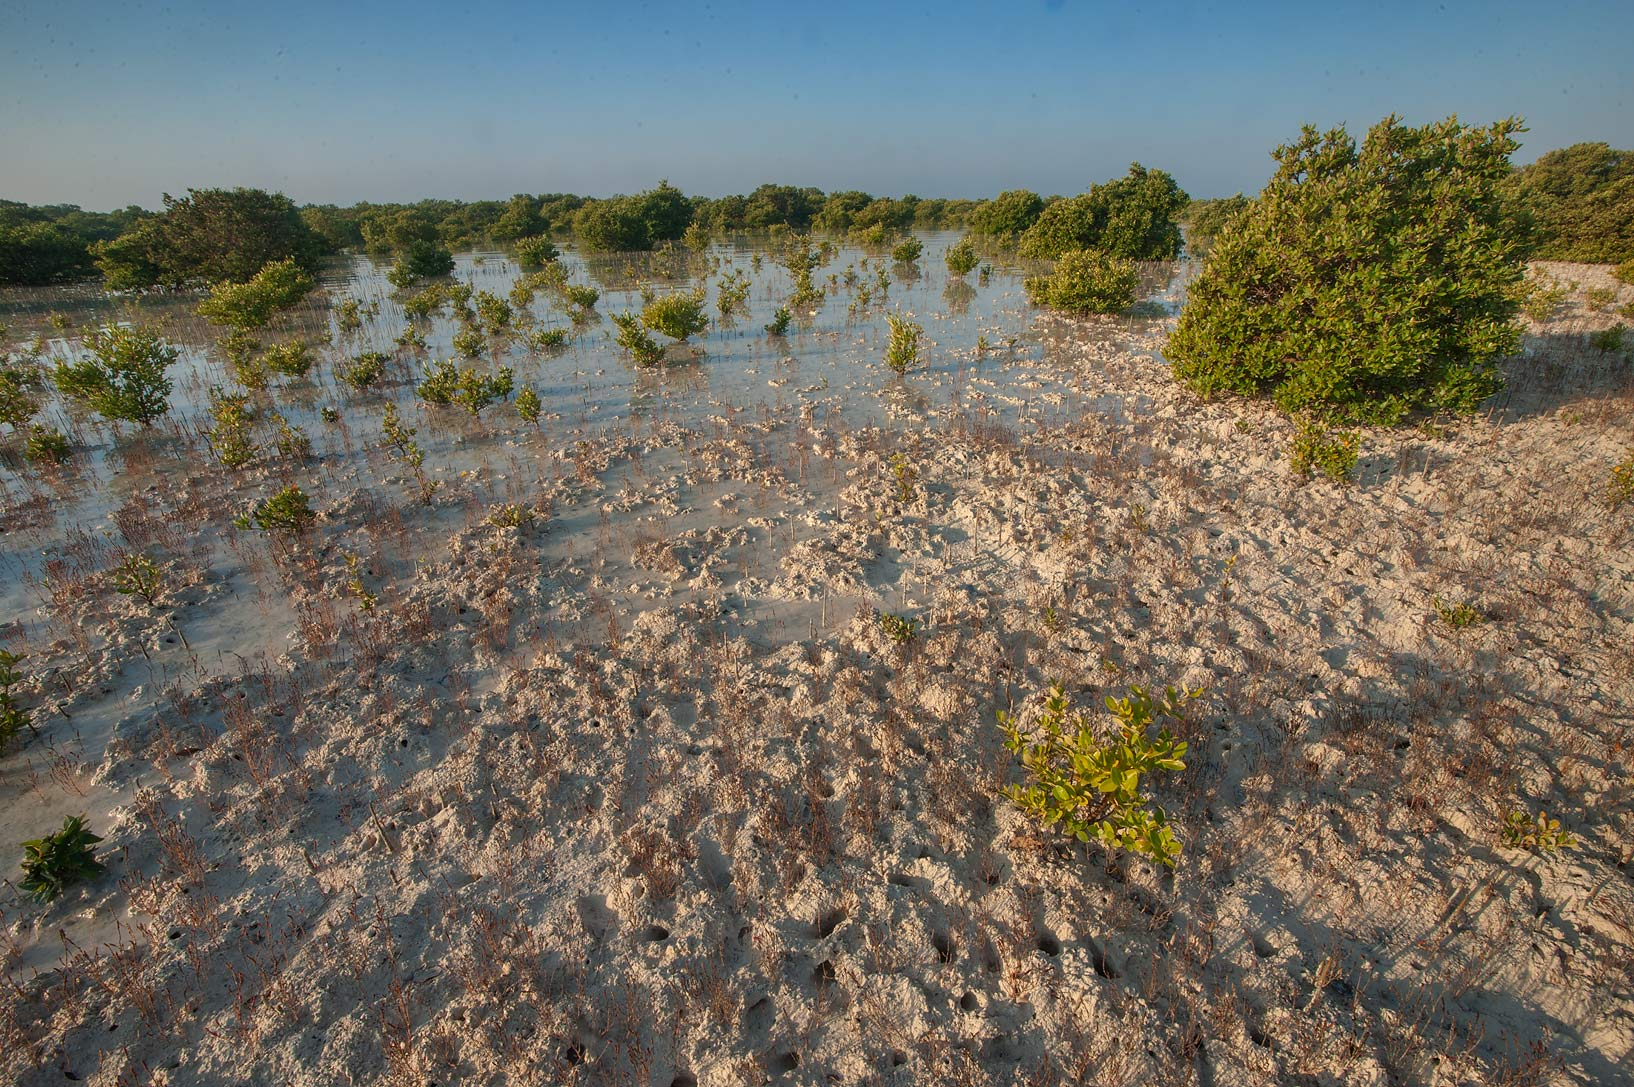 Mangroves at sunrise on Purple Island (Jazirat Bin Ghanim). Al Khor, Qatar